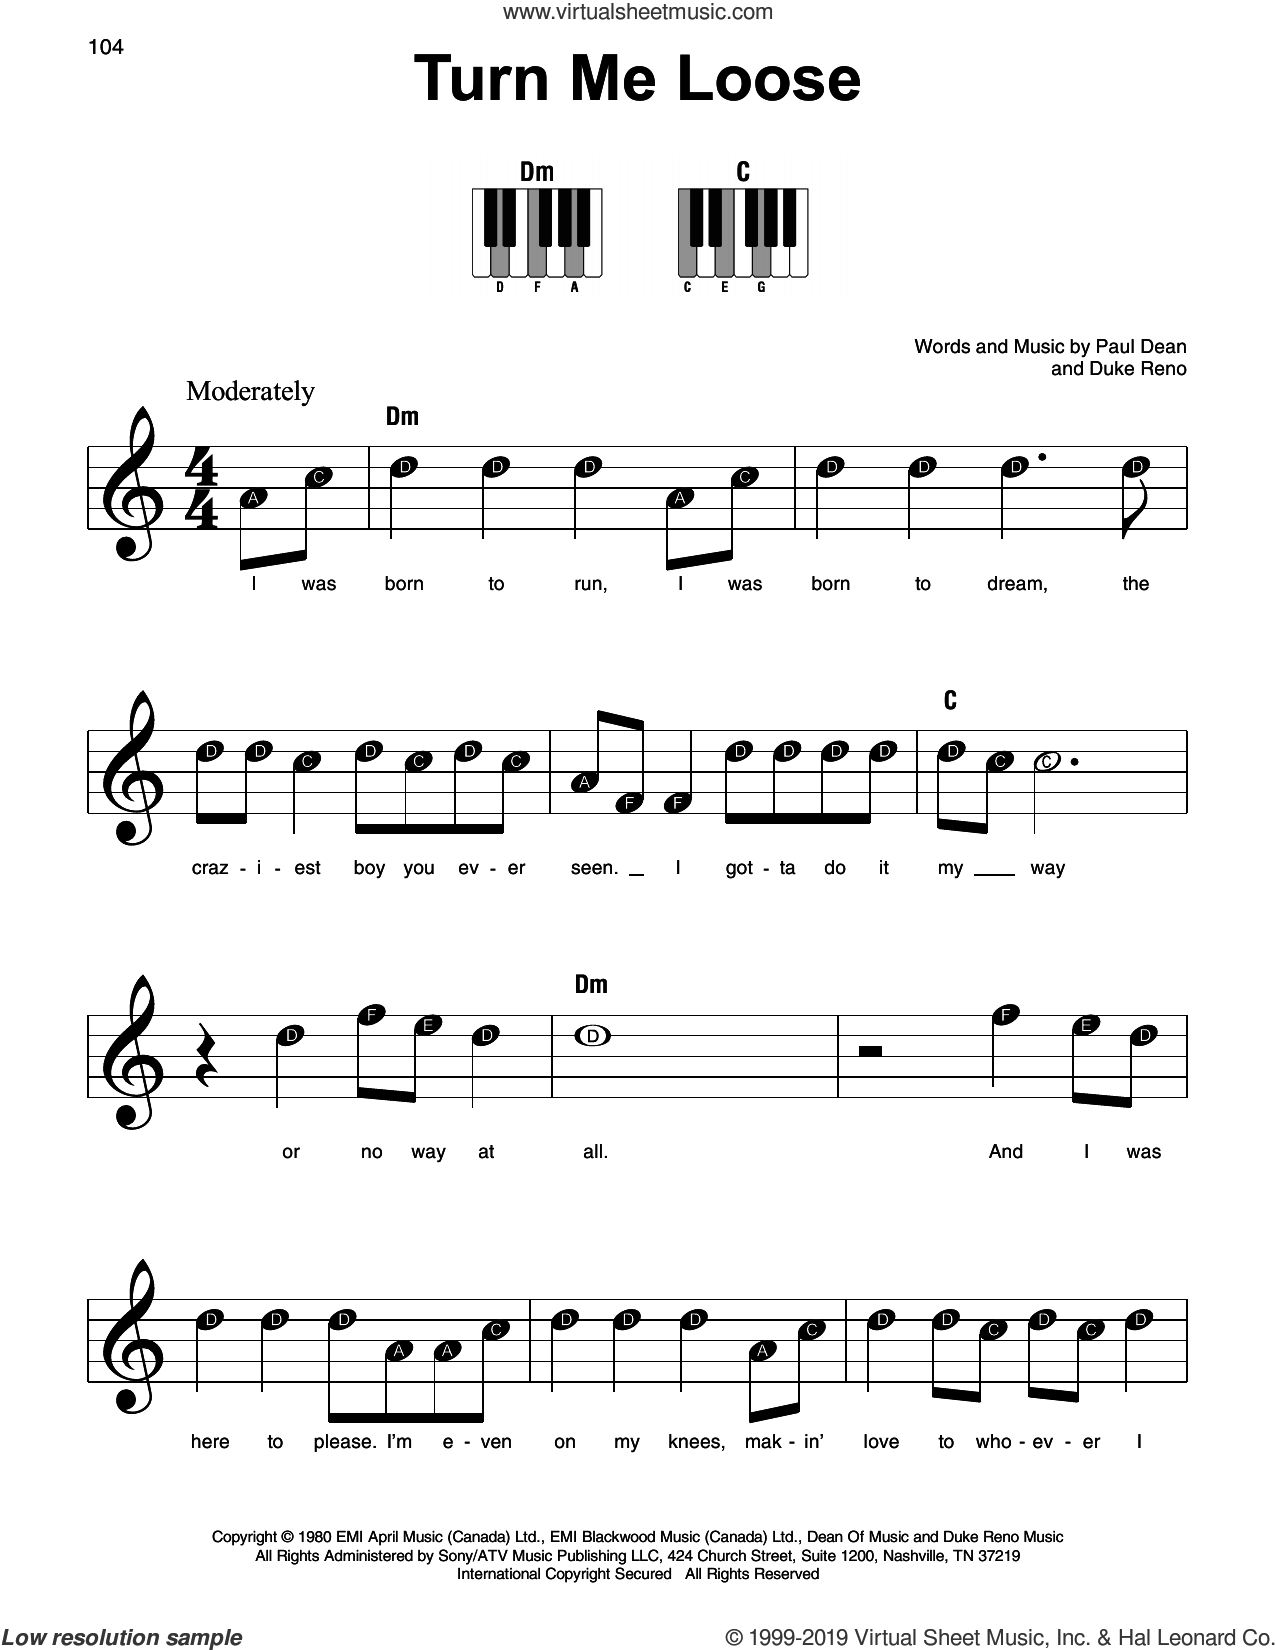 Turn Me Loose sheet music for piano solo by Loverboy, Duke Reno and Paul Dean, beginner skill level